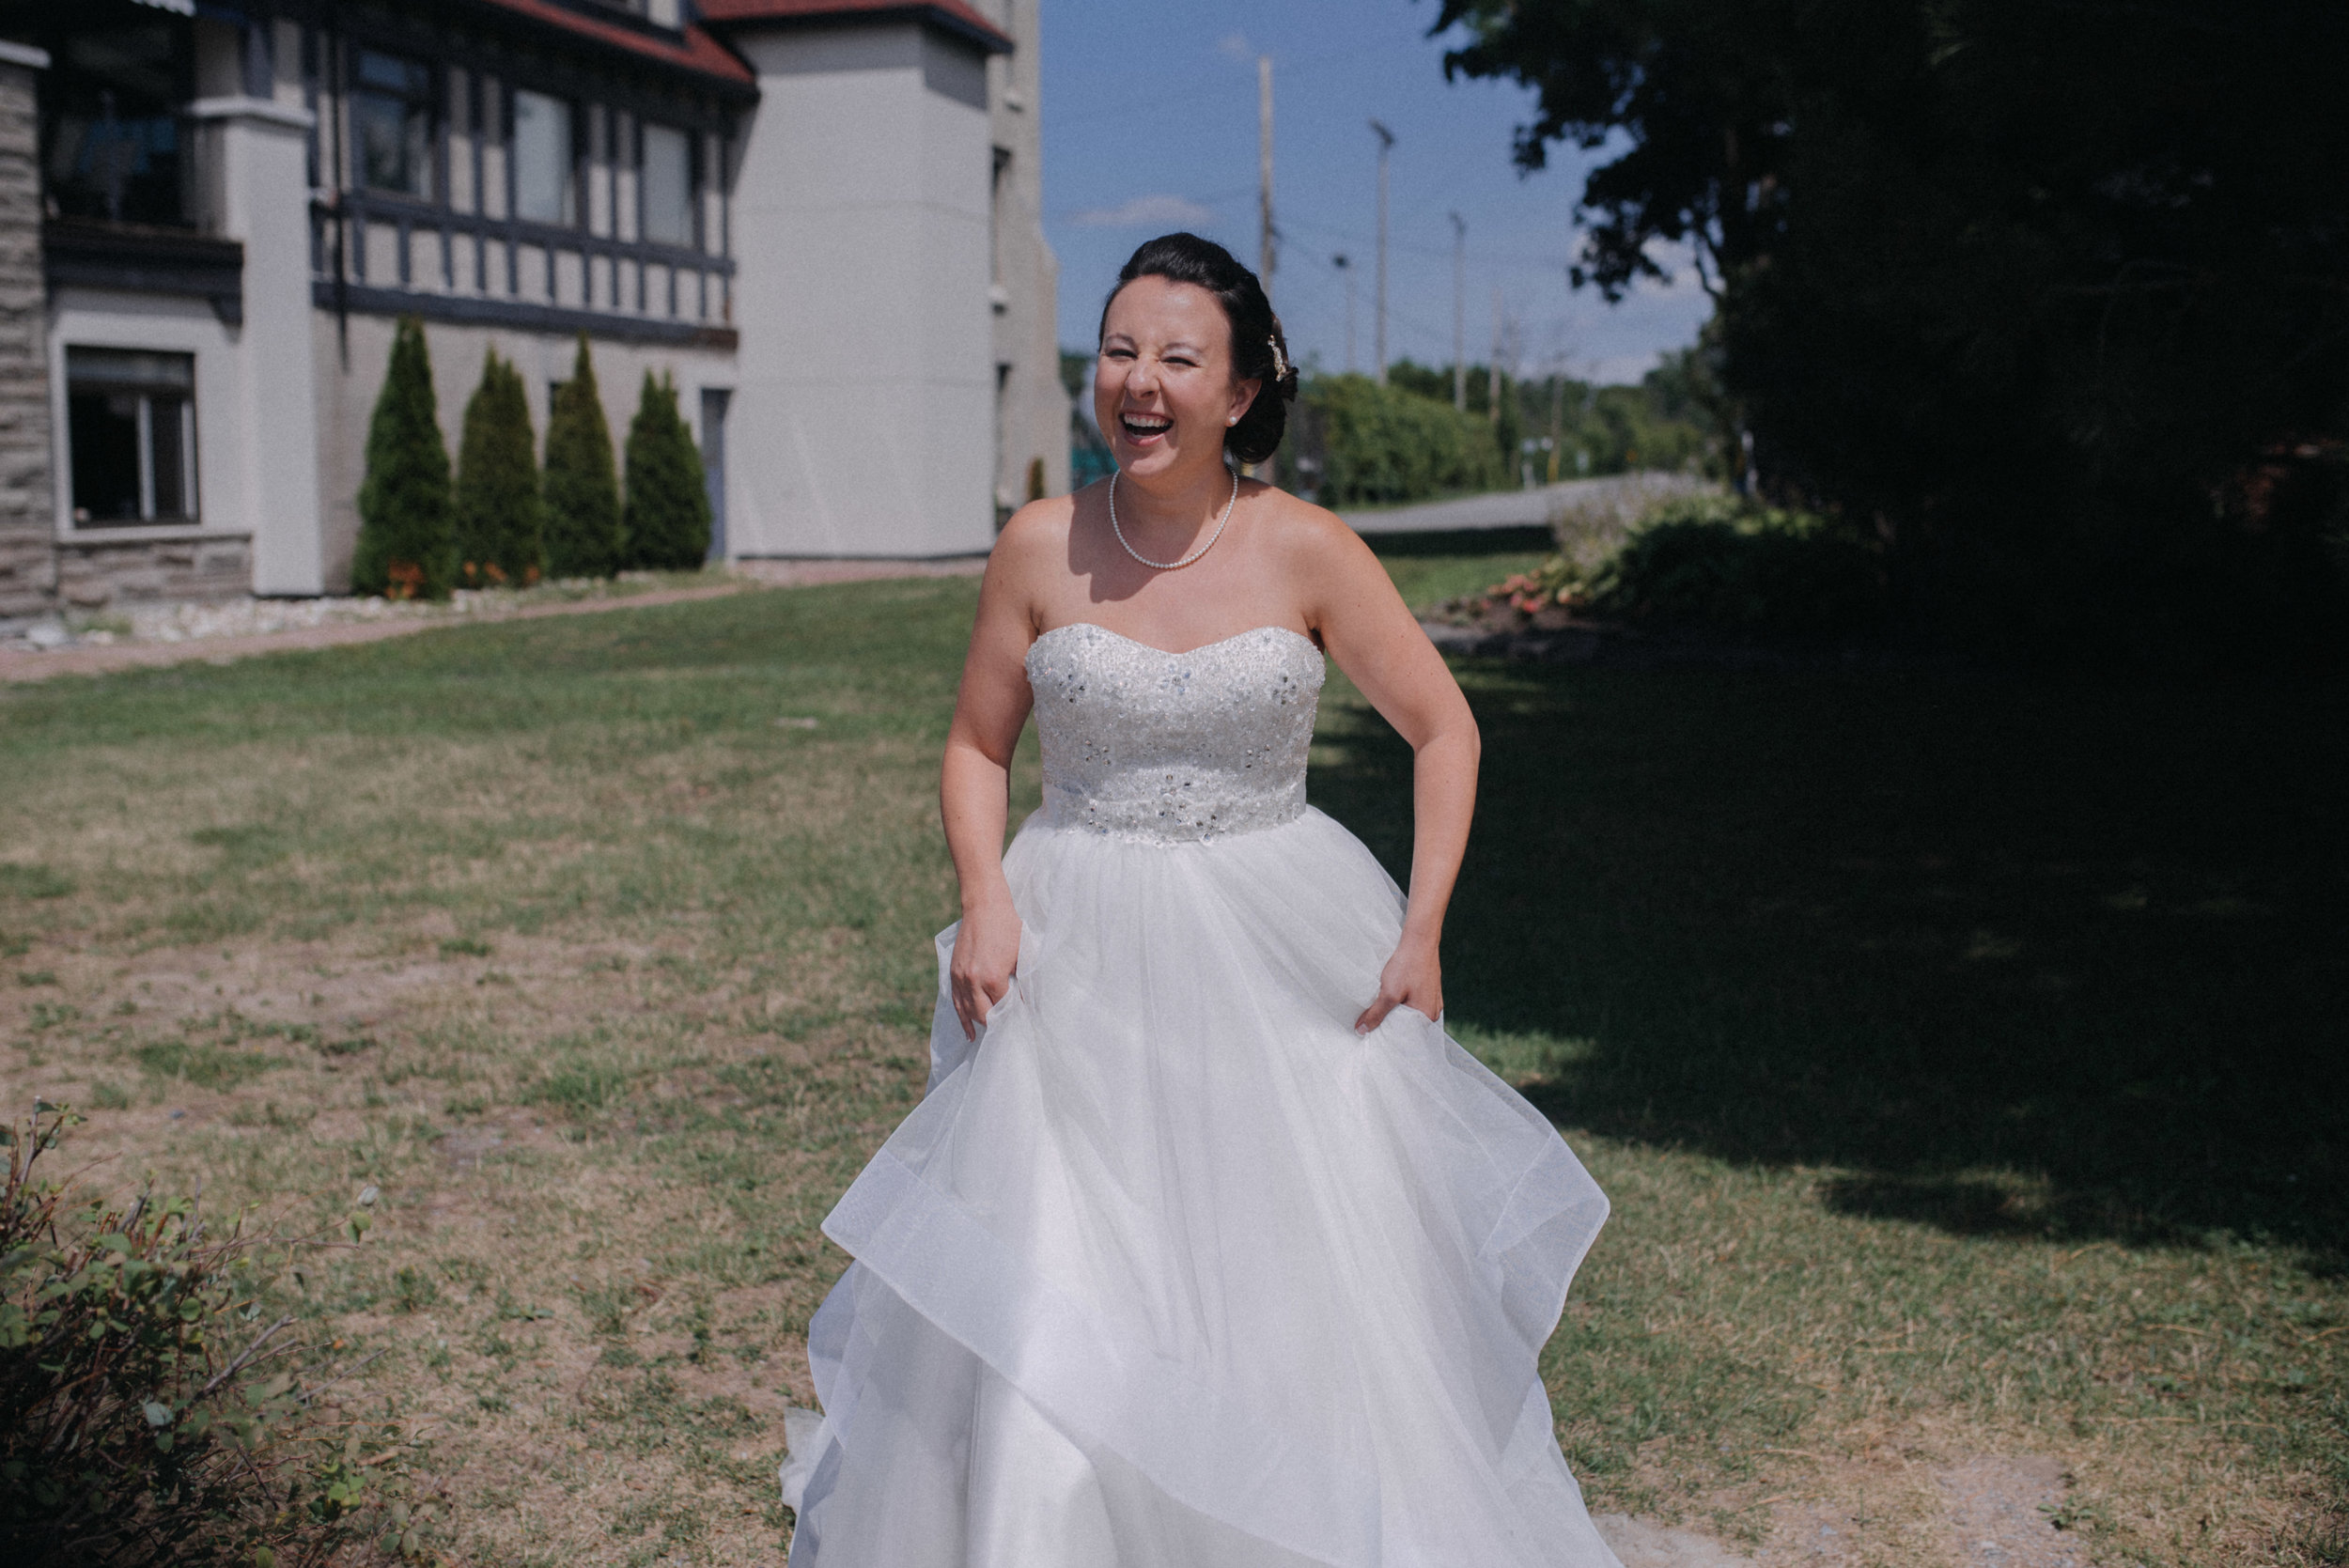 photographe_gatineau_mariage_ottawa_photographer_wedding_natasha_liard_photo_documentary_candid_lifestyle (6).jpg